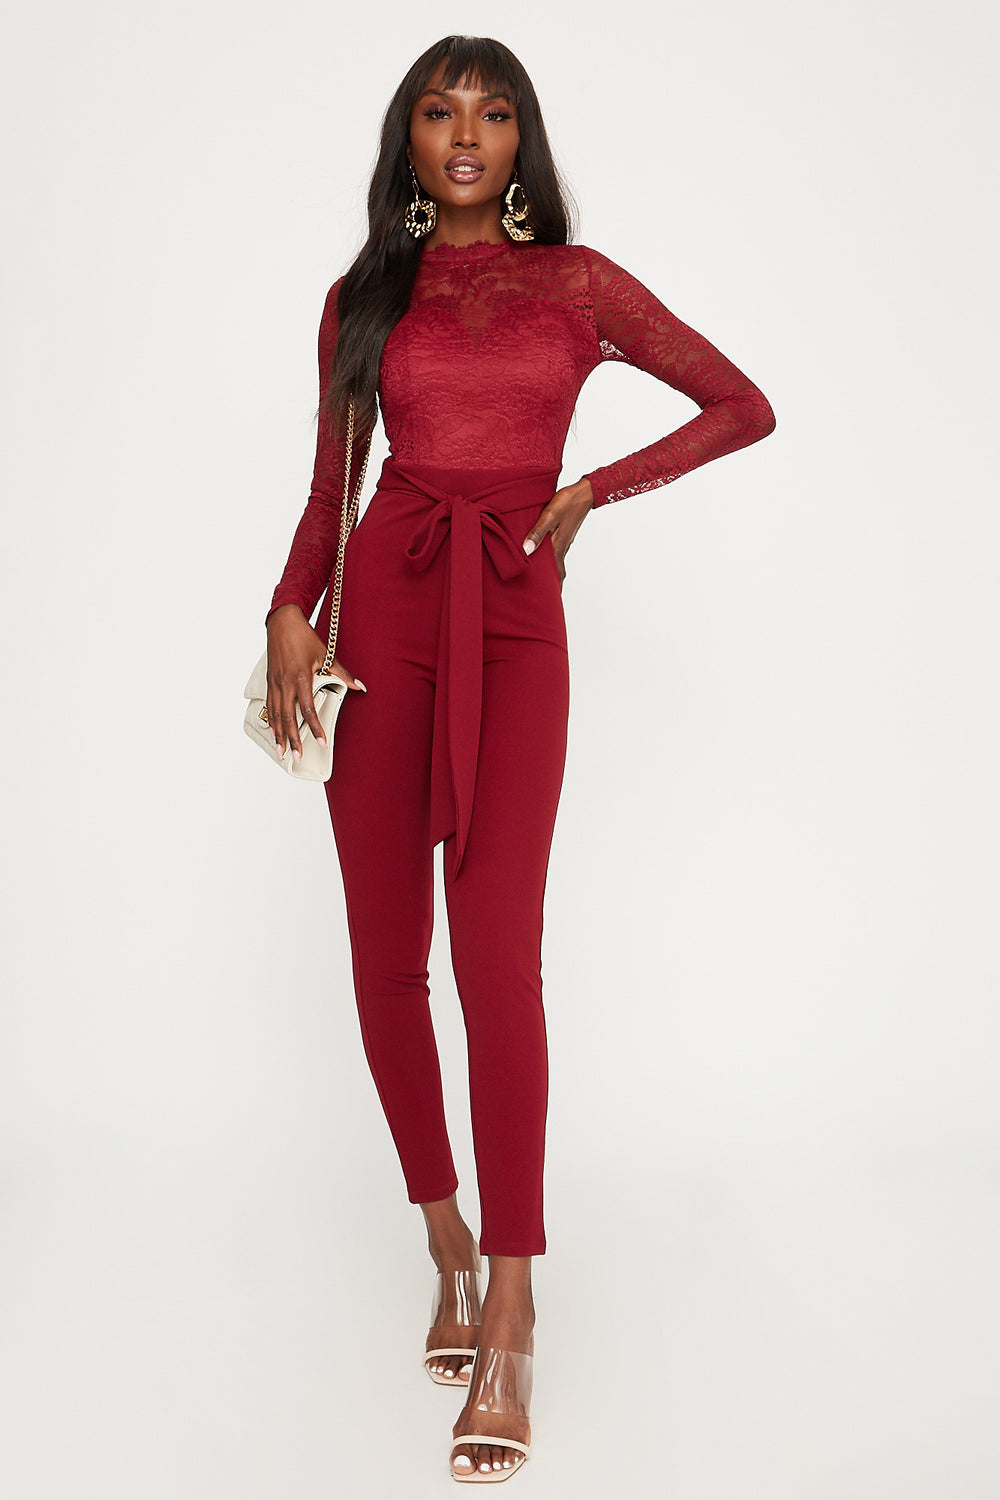 Lace Mock Neck Belted Long Sleeve Jumpsuit Burgundy